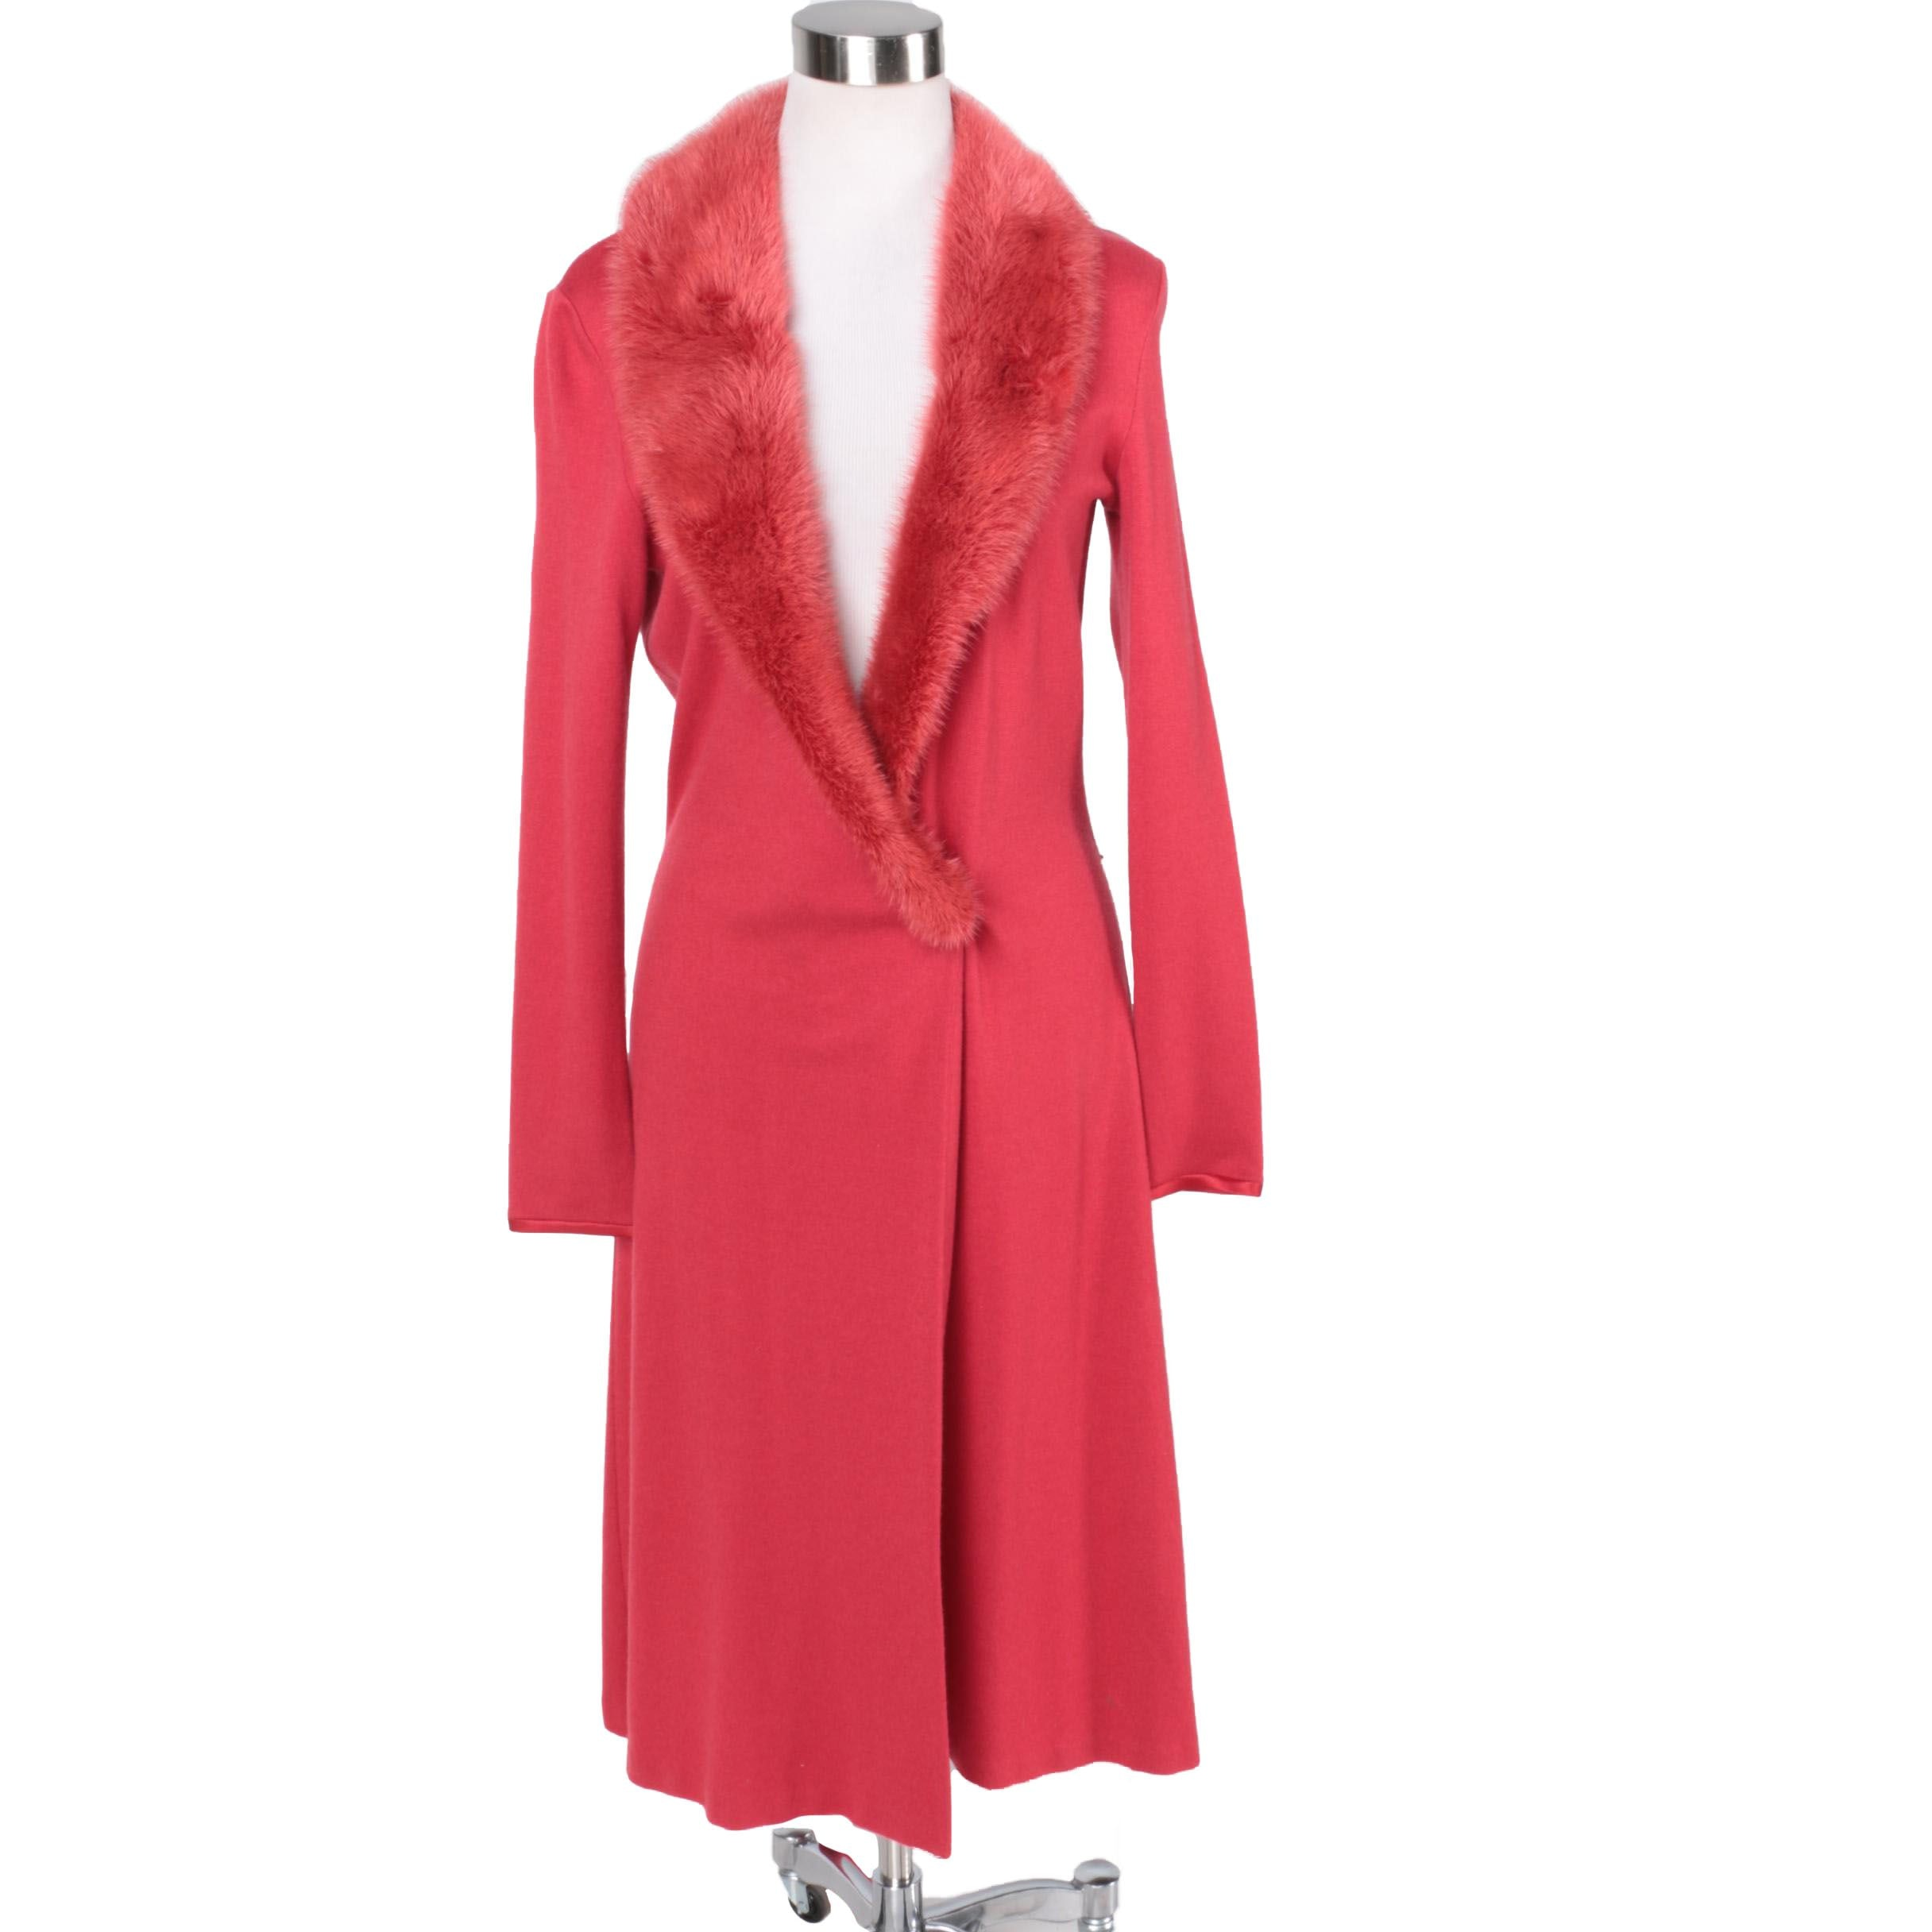 Heidi Weisel Cashmere Sweater Coat with Mink Collar